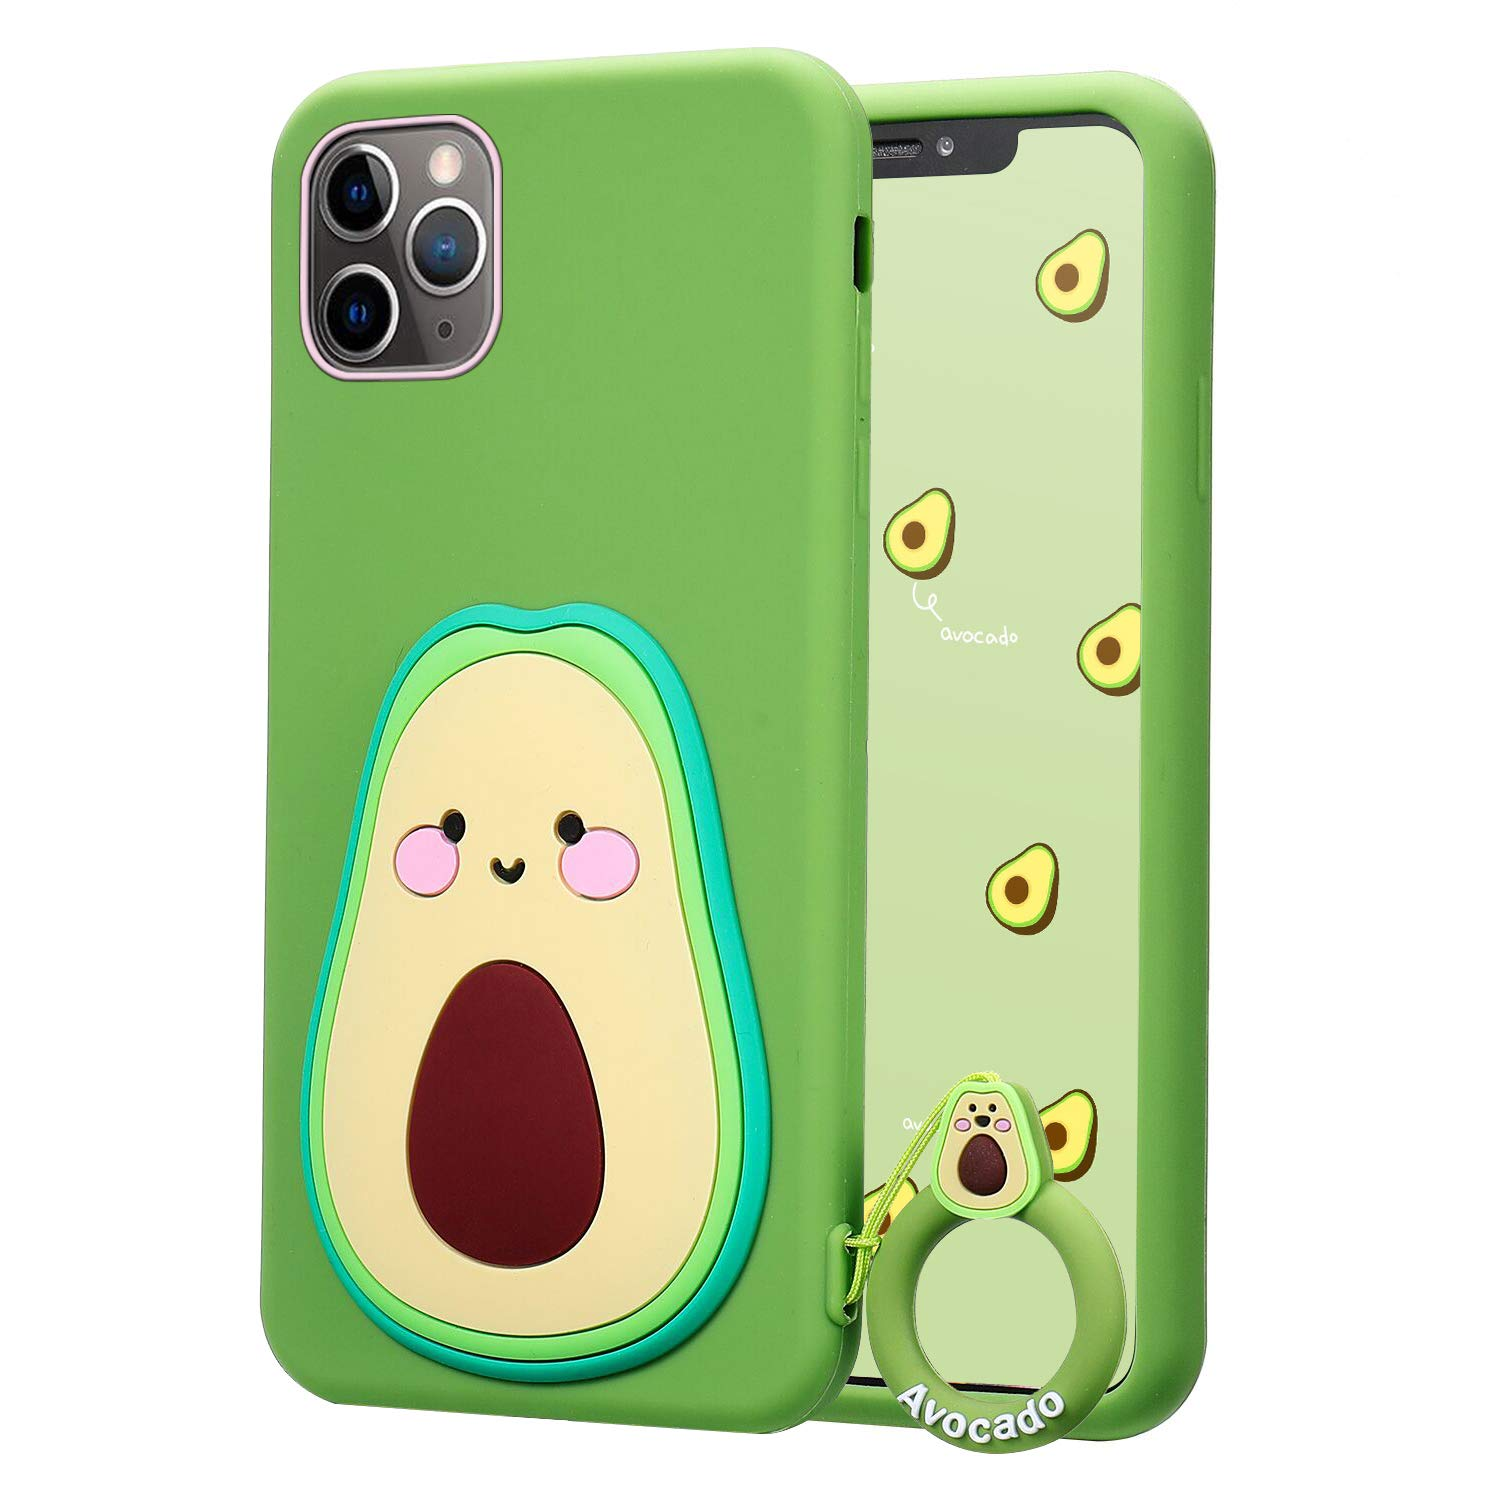 """Coralogo for iPhone 11 Case,3D Cute Cartoon Fun Funny Soft Silicone Character Shockproof Kawaii Fashion Fruit Food Stylish Design Designer Skin Cover Cases for Girls Teens Kids iPhone 11 6.1""""(Avocado)"""